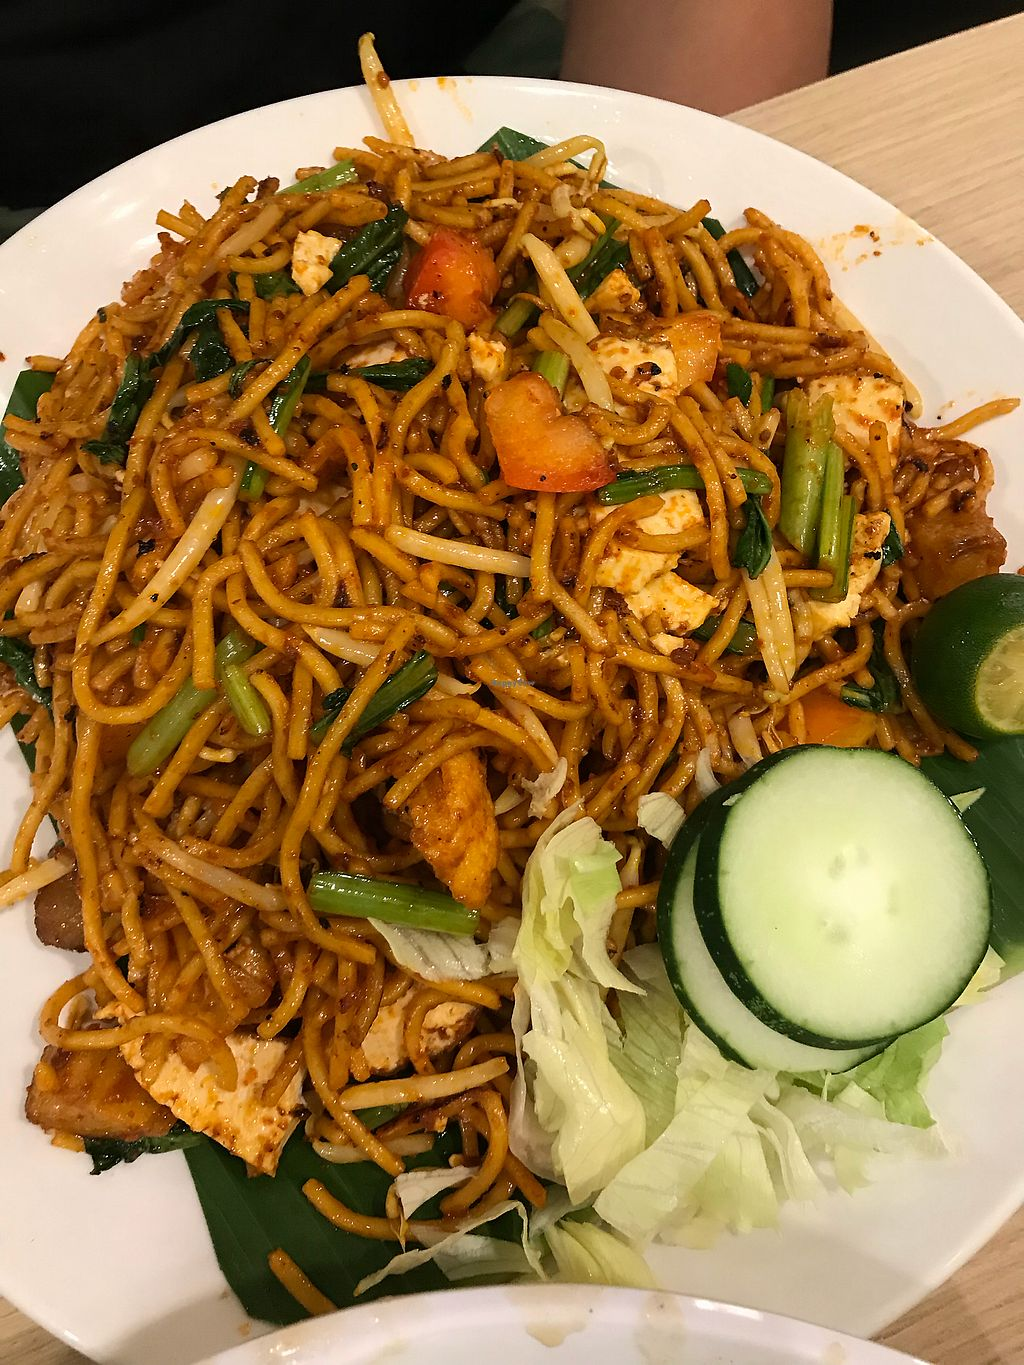 "Photo of Gokul Vegetarian Restaurant and Cafe  by <a href=""/members/profile/gayle81"">gayle81</a> <br/>Massive mee goreng  <br/> December 16, 2017  - <a href='/contact/abuse/image/4455/336044'>Report</a>"